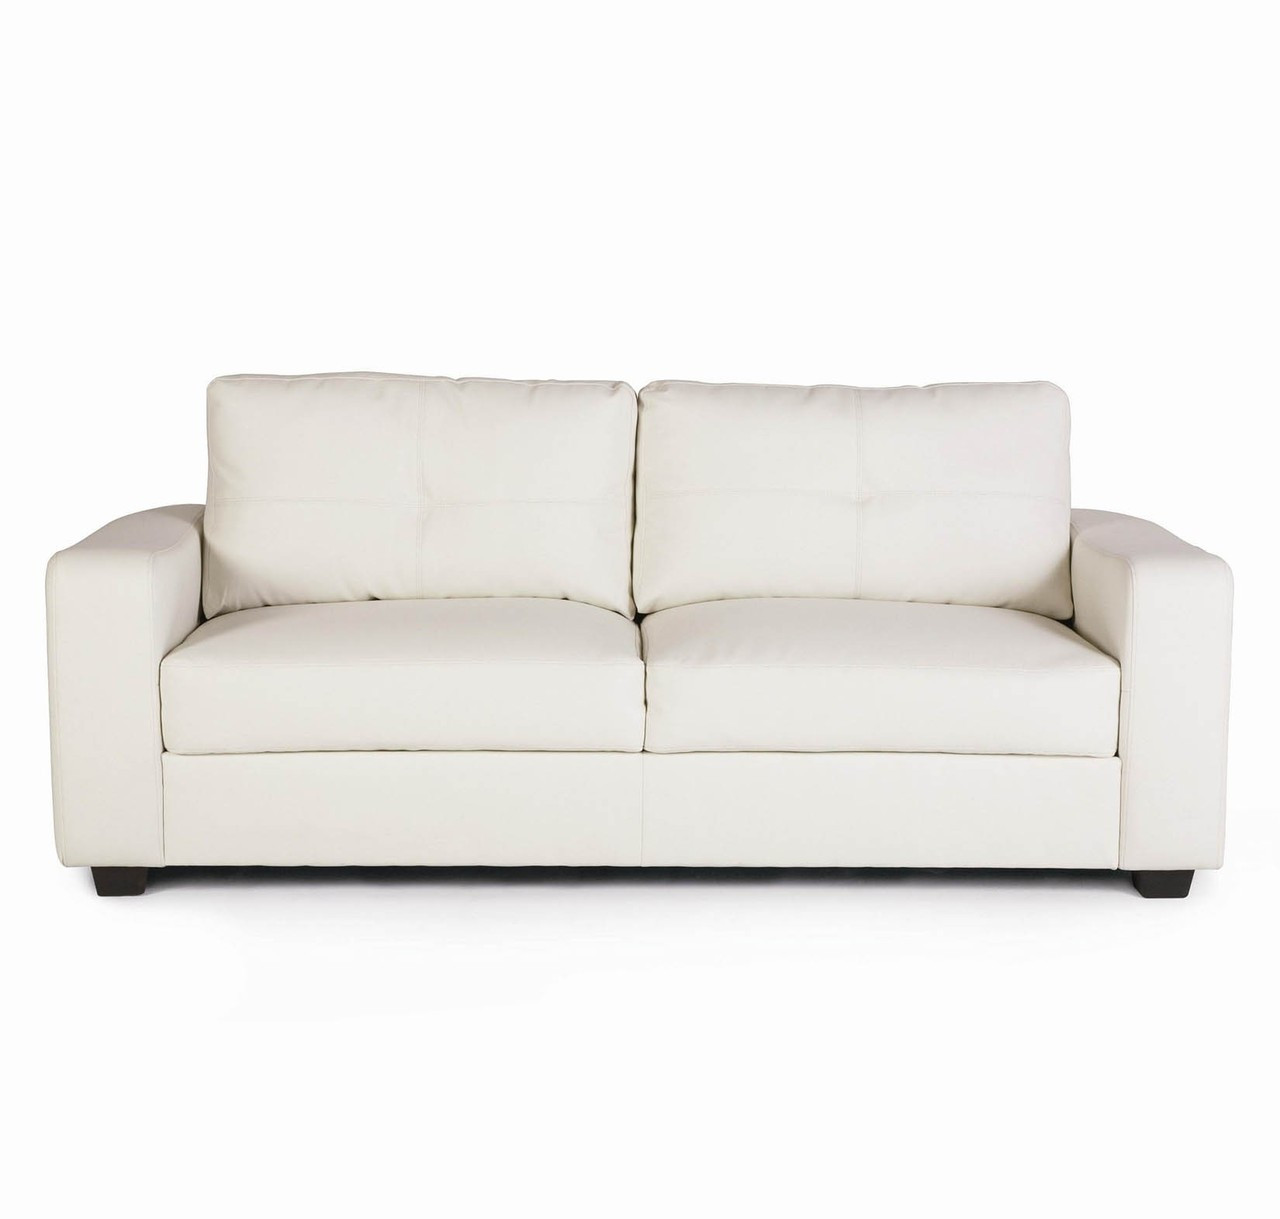 leather sofas cheap prices sleeper sofa henderson nv white lacey bonded pallucci furniture loading zoom